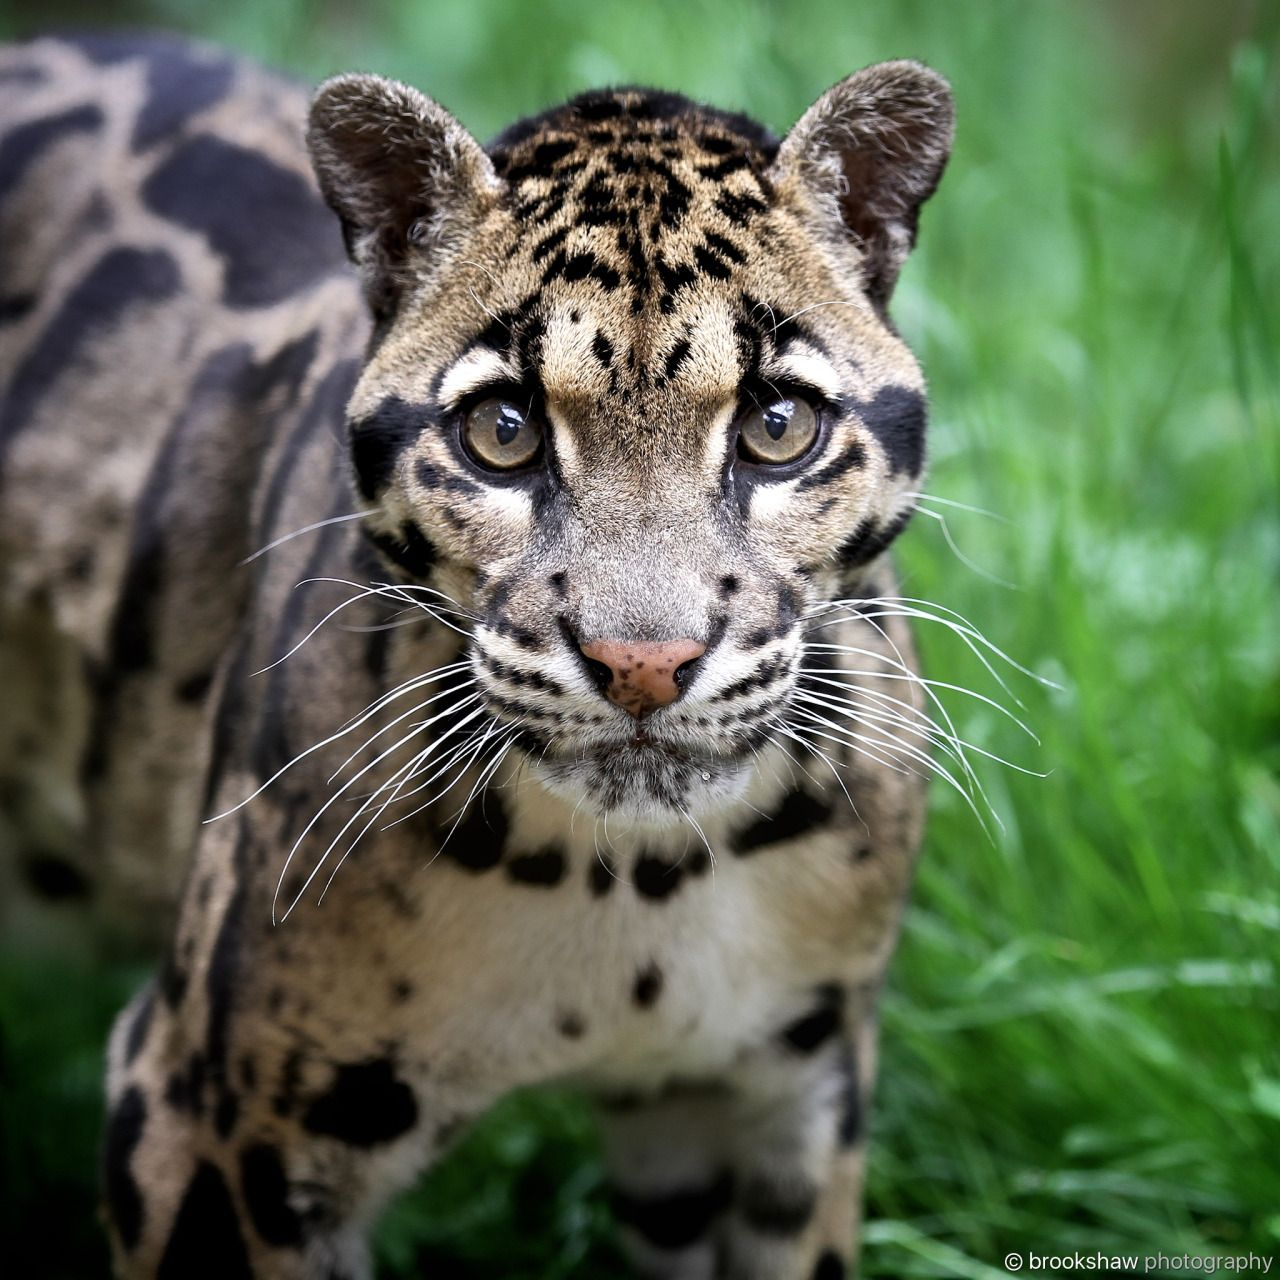 Magical Nature Tour • brookshawphotography: A clouded leopard named Ben...